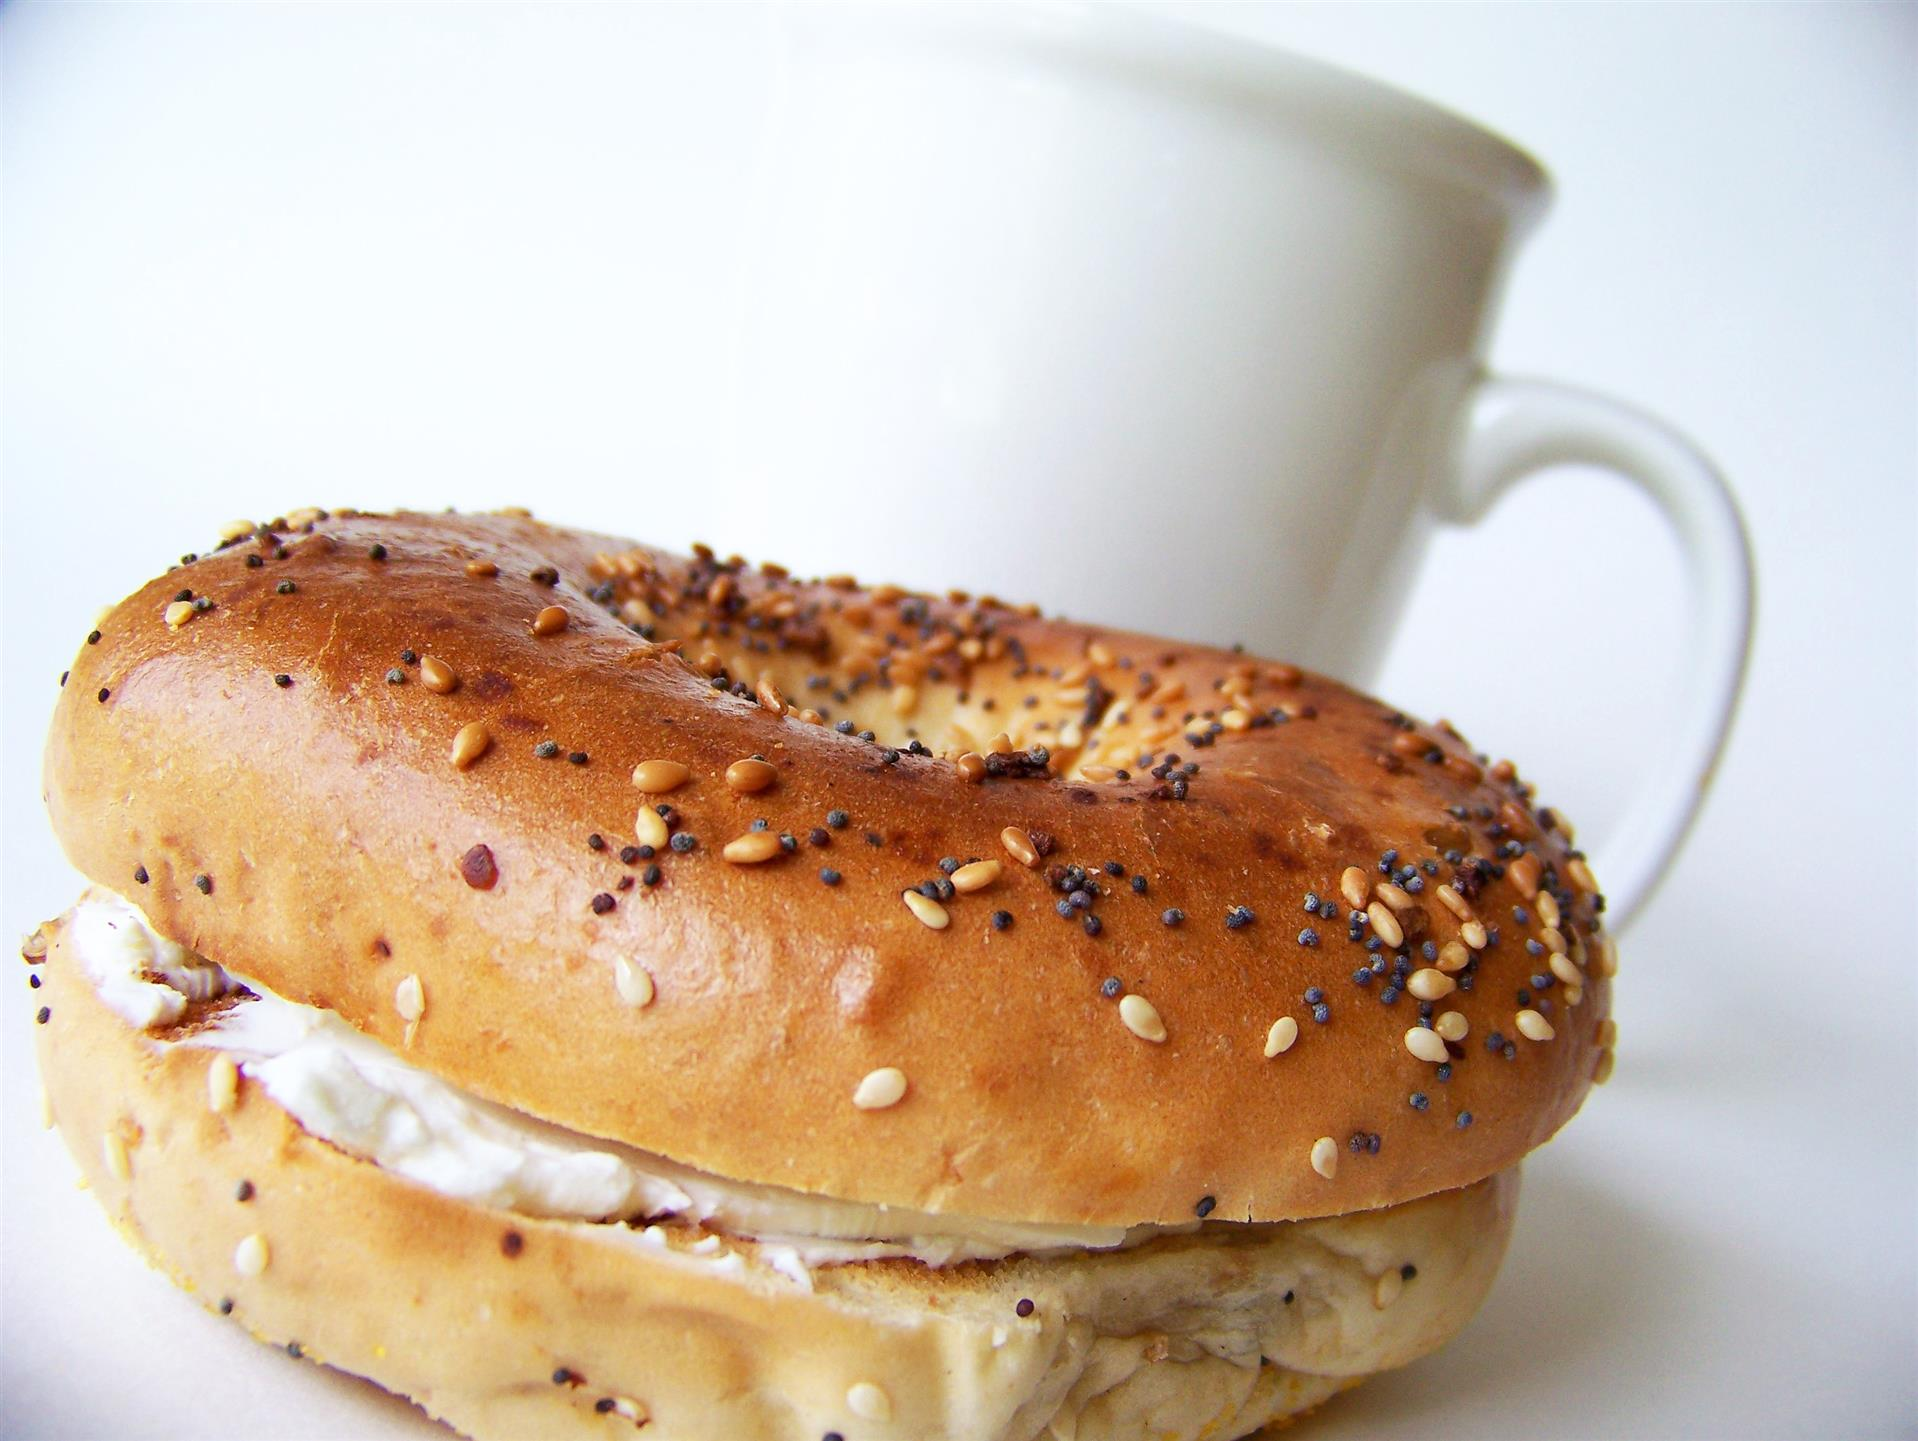 bagel with cream cheese and a cup of coffee